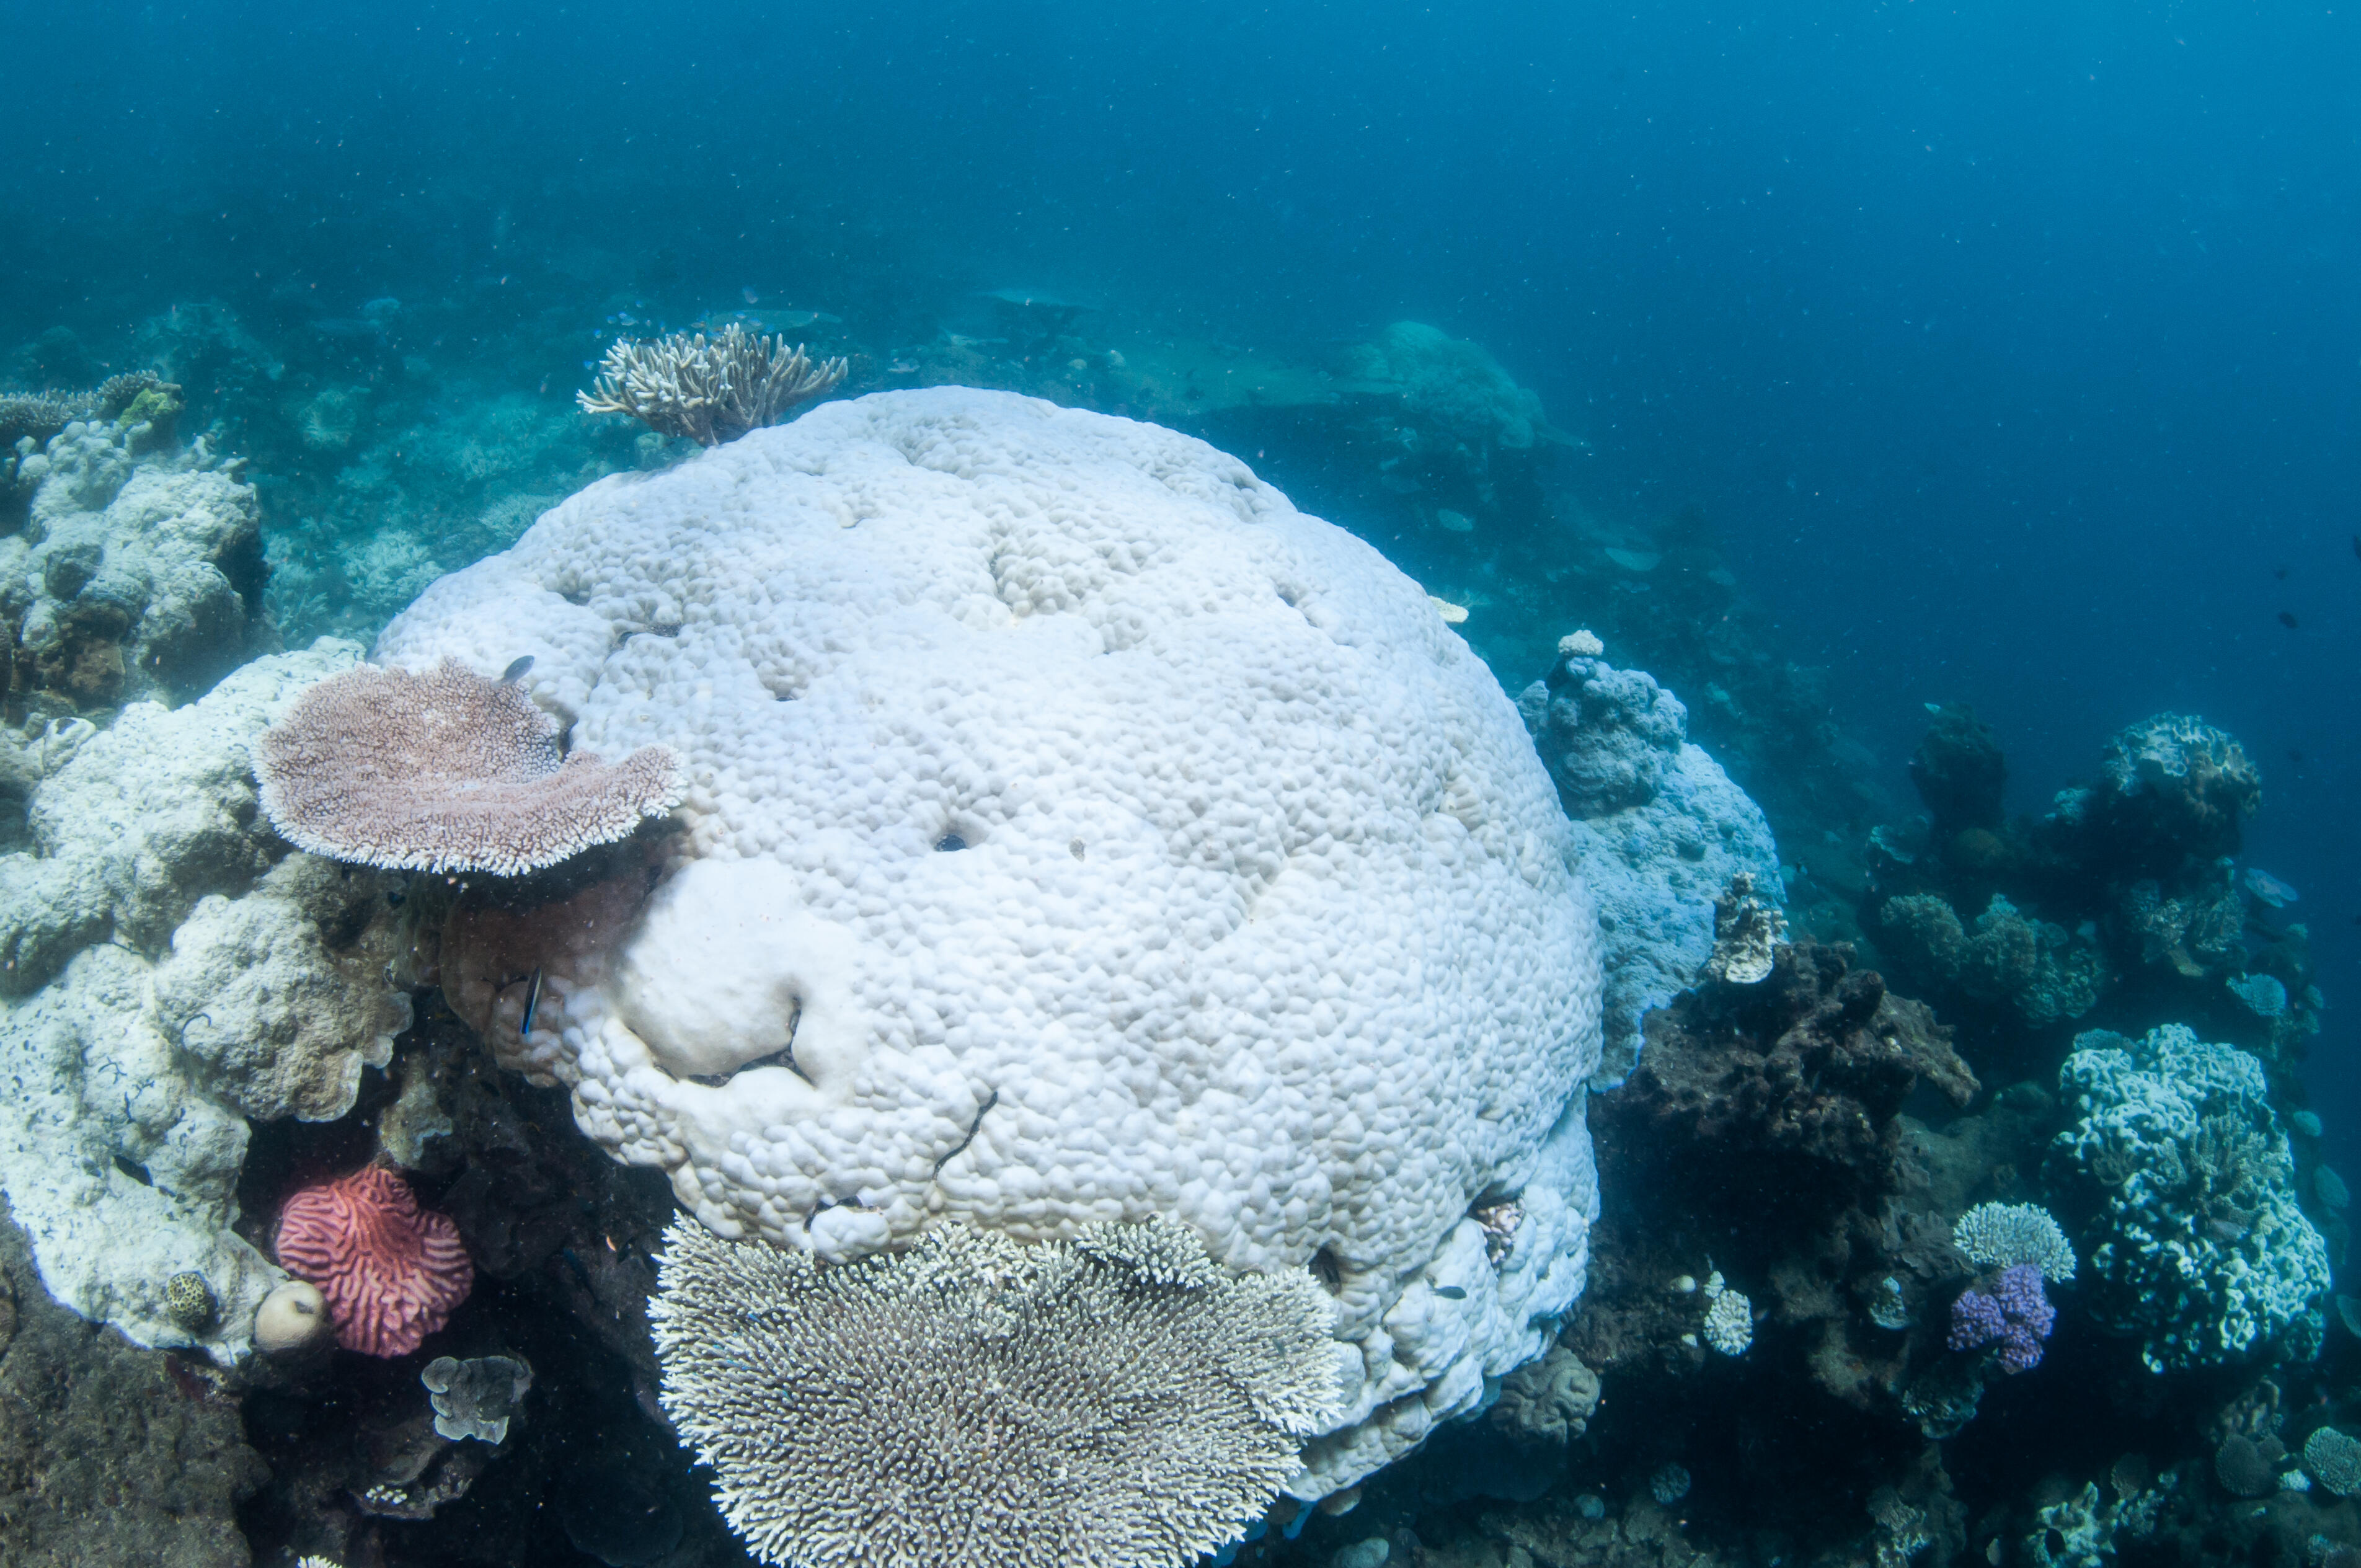 Coral Bleaching on the Great Barrier Reef in Australia